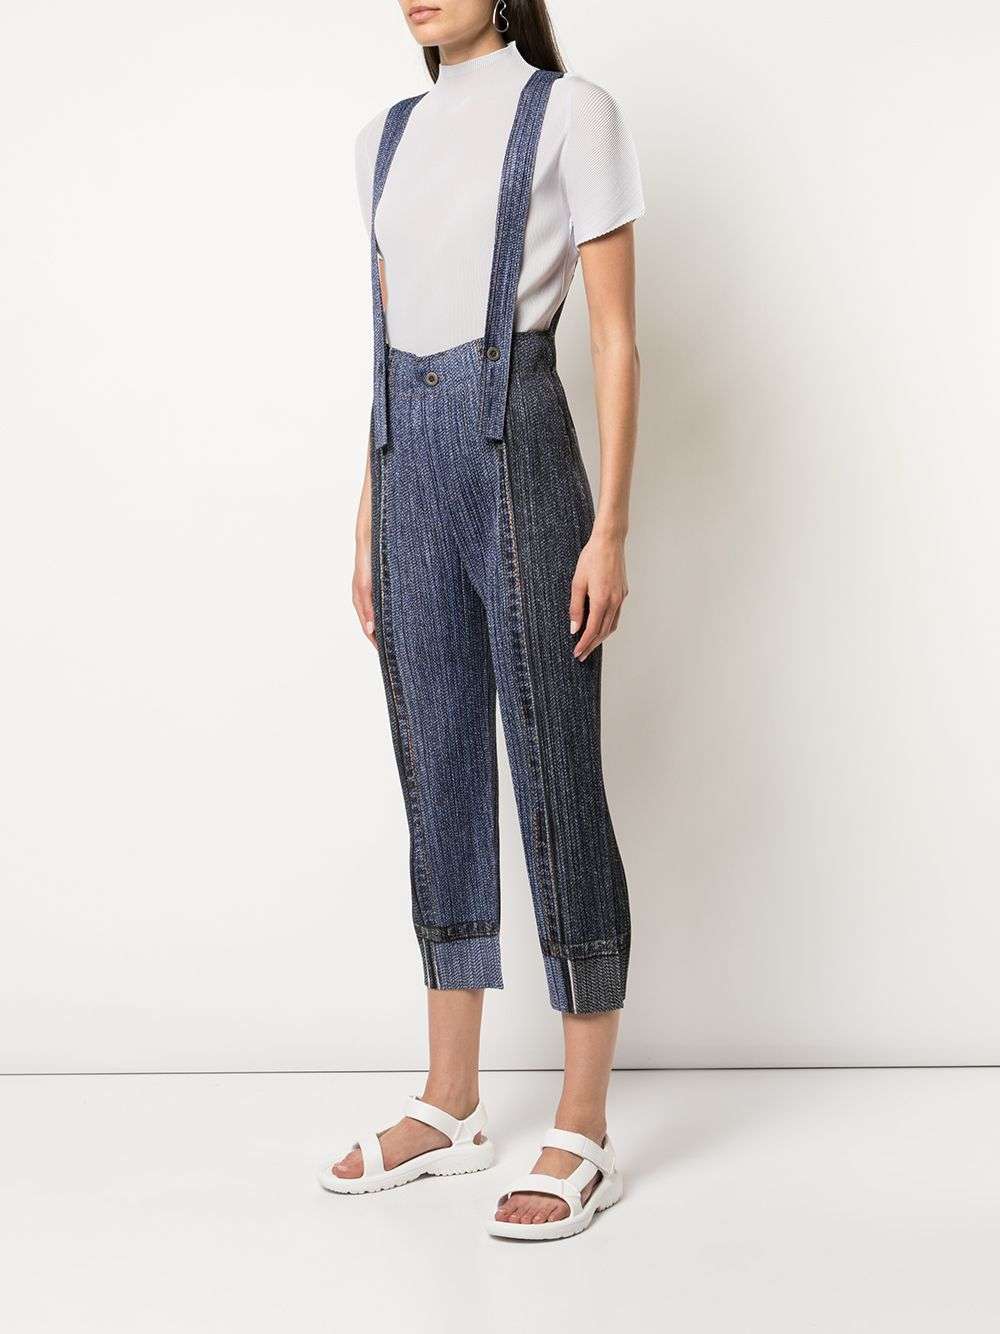 PLEATS PLEASE WOMEN TWO TONE DENIM JUMPSUIT